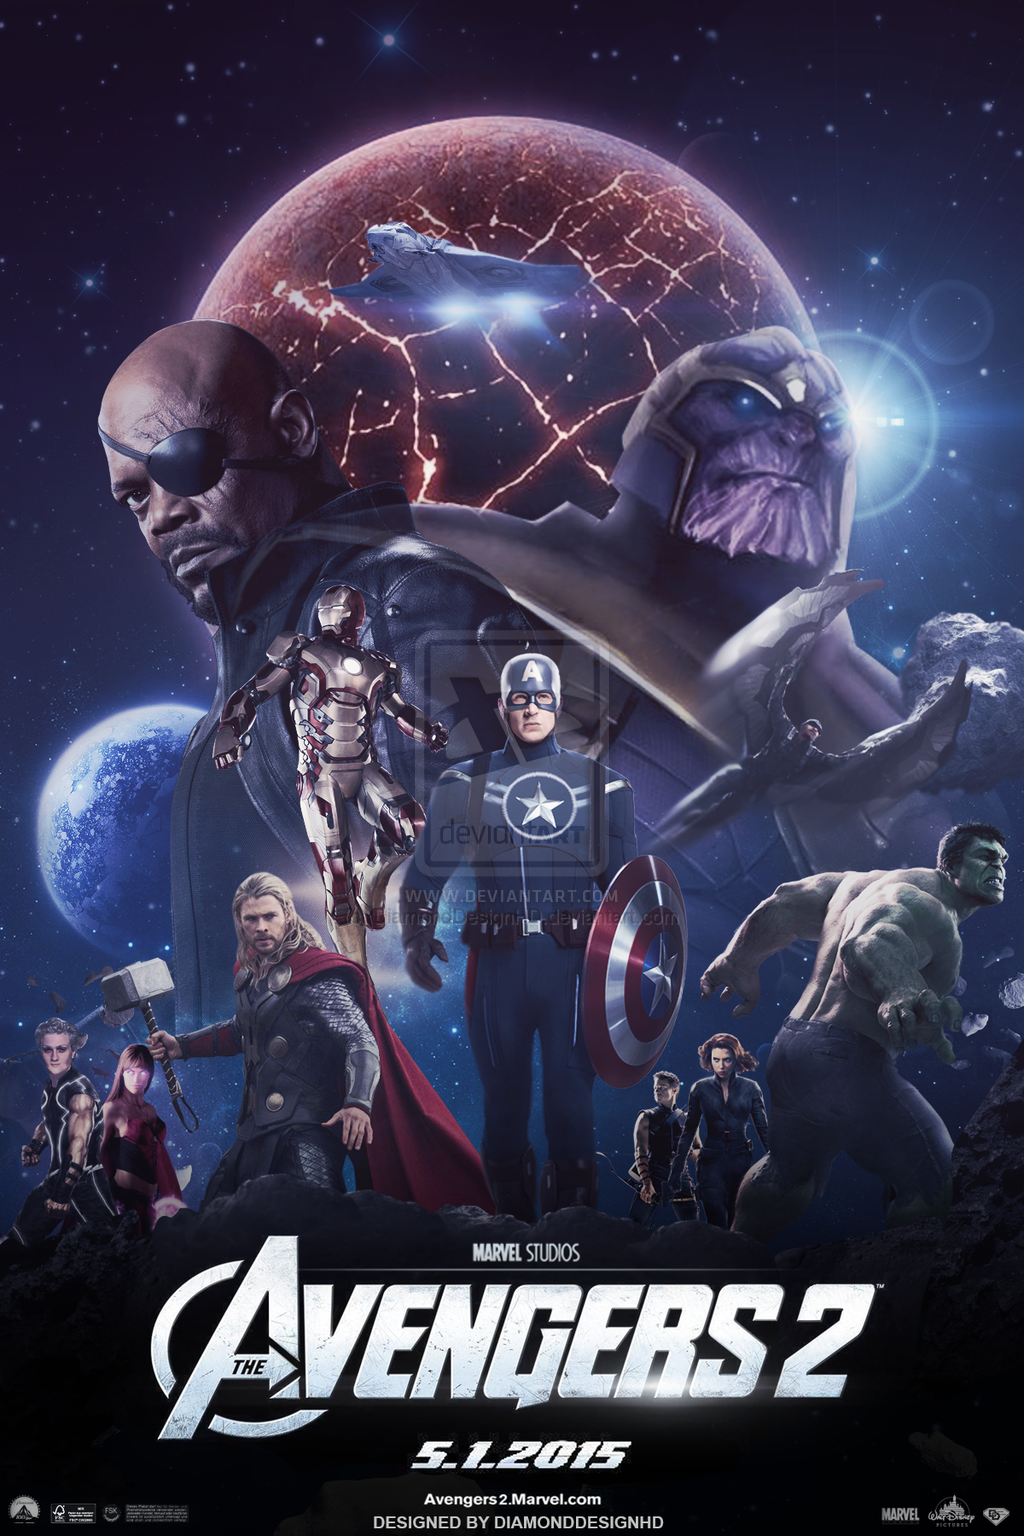 The Avengers 2 (FAN-MADE) Poster